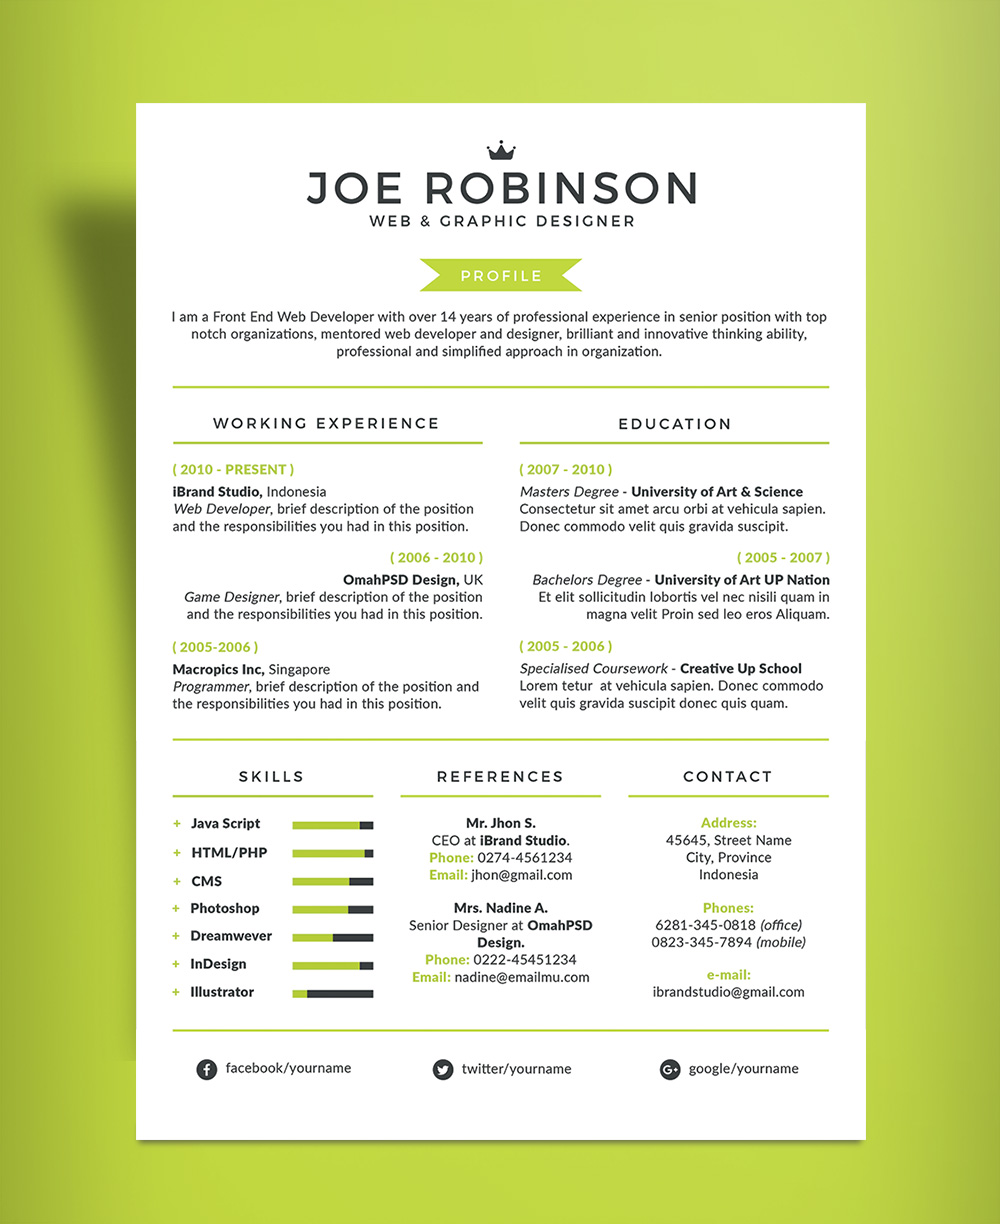 free elegant  u0026 professional resume  cv  design template in 3 different colors psd file